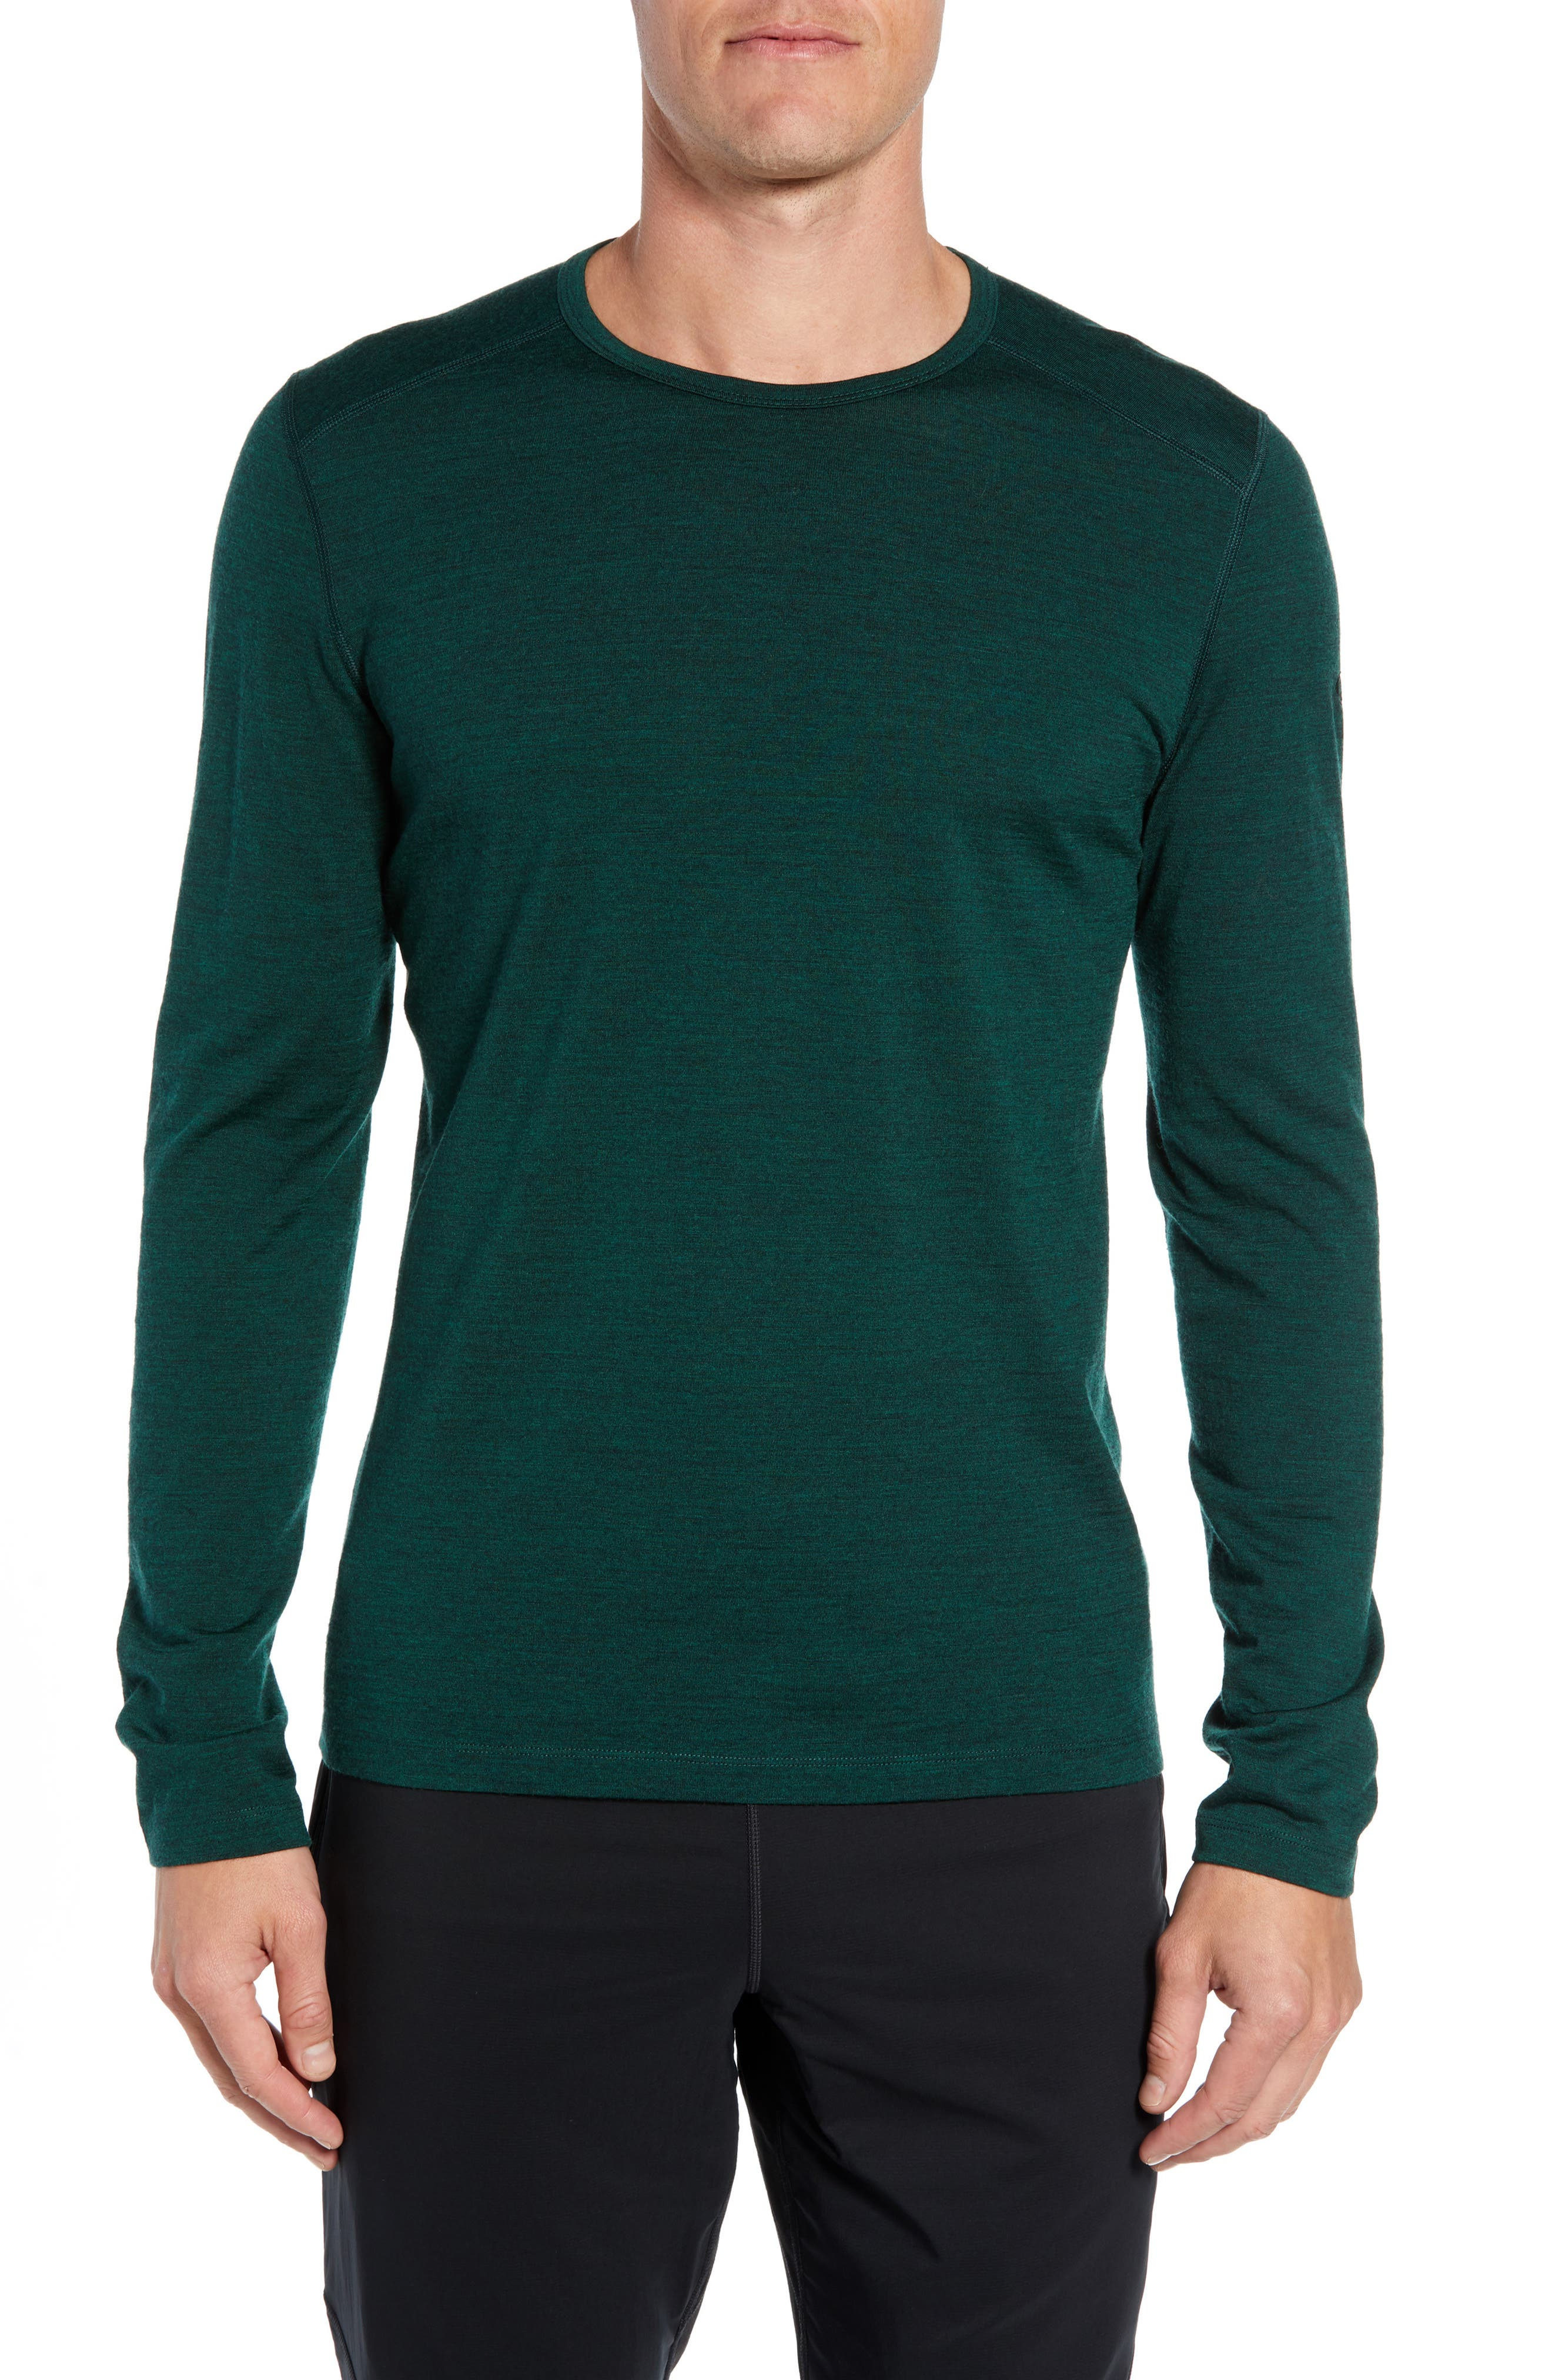 Oasis Slim Merino Wool T-Shirt,                             Main thumbnail 1, color,                             IMPERIAL HEATHER